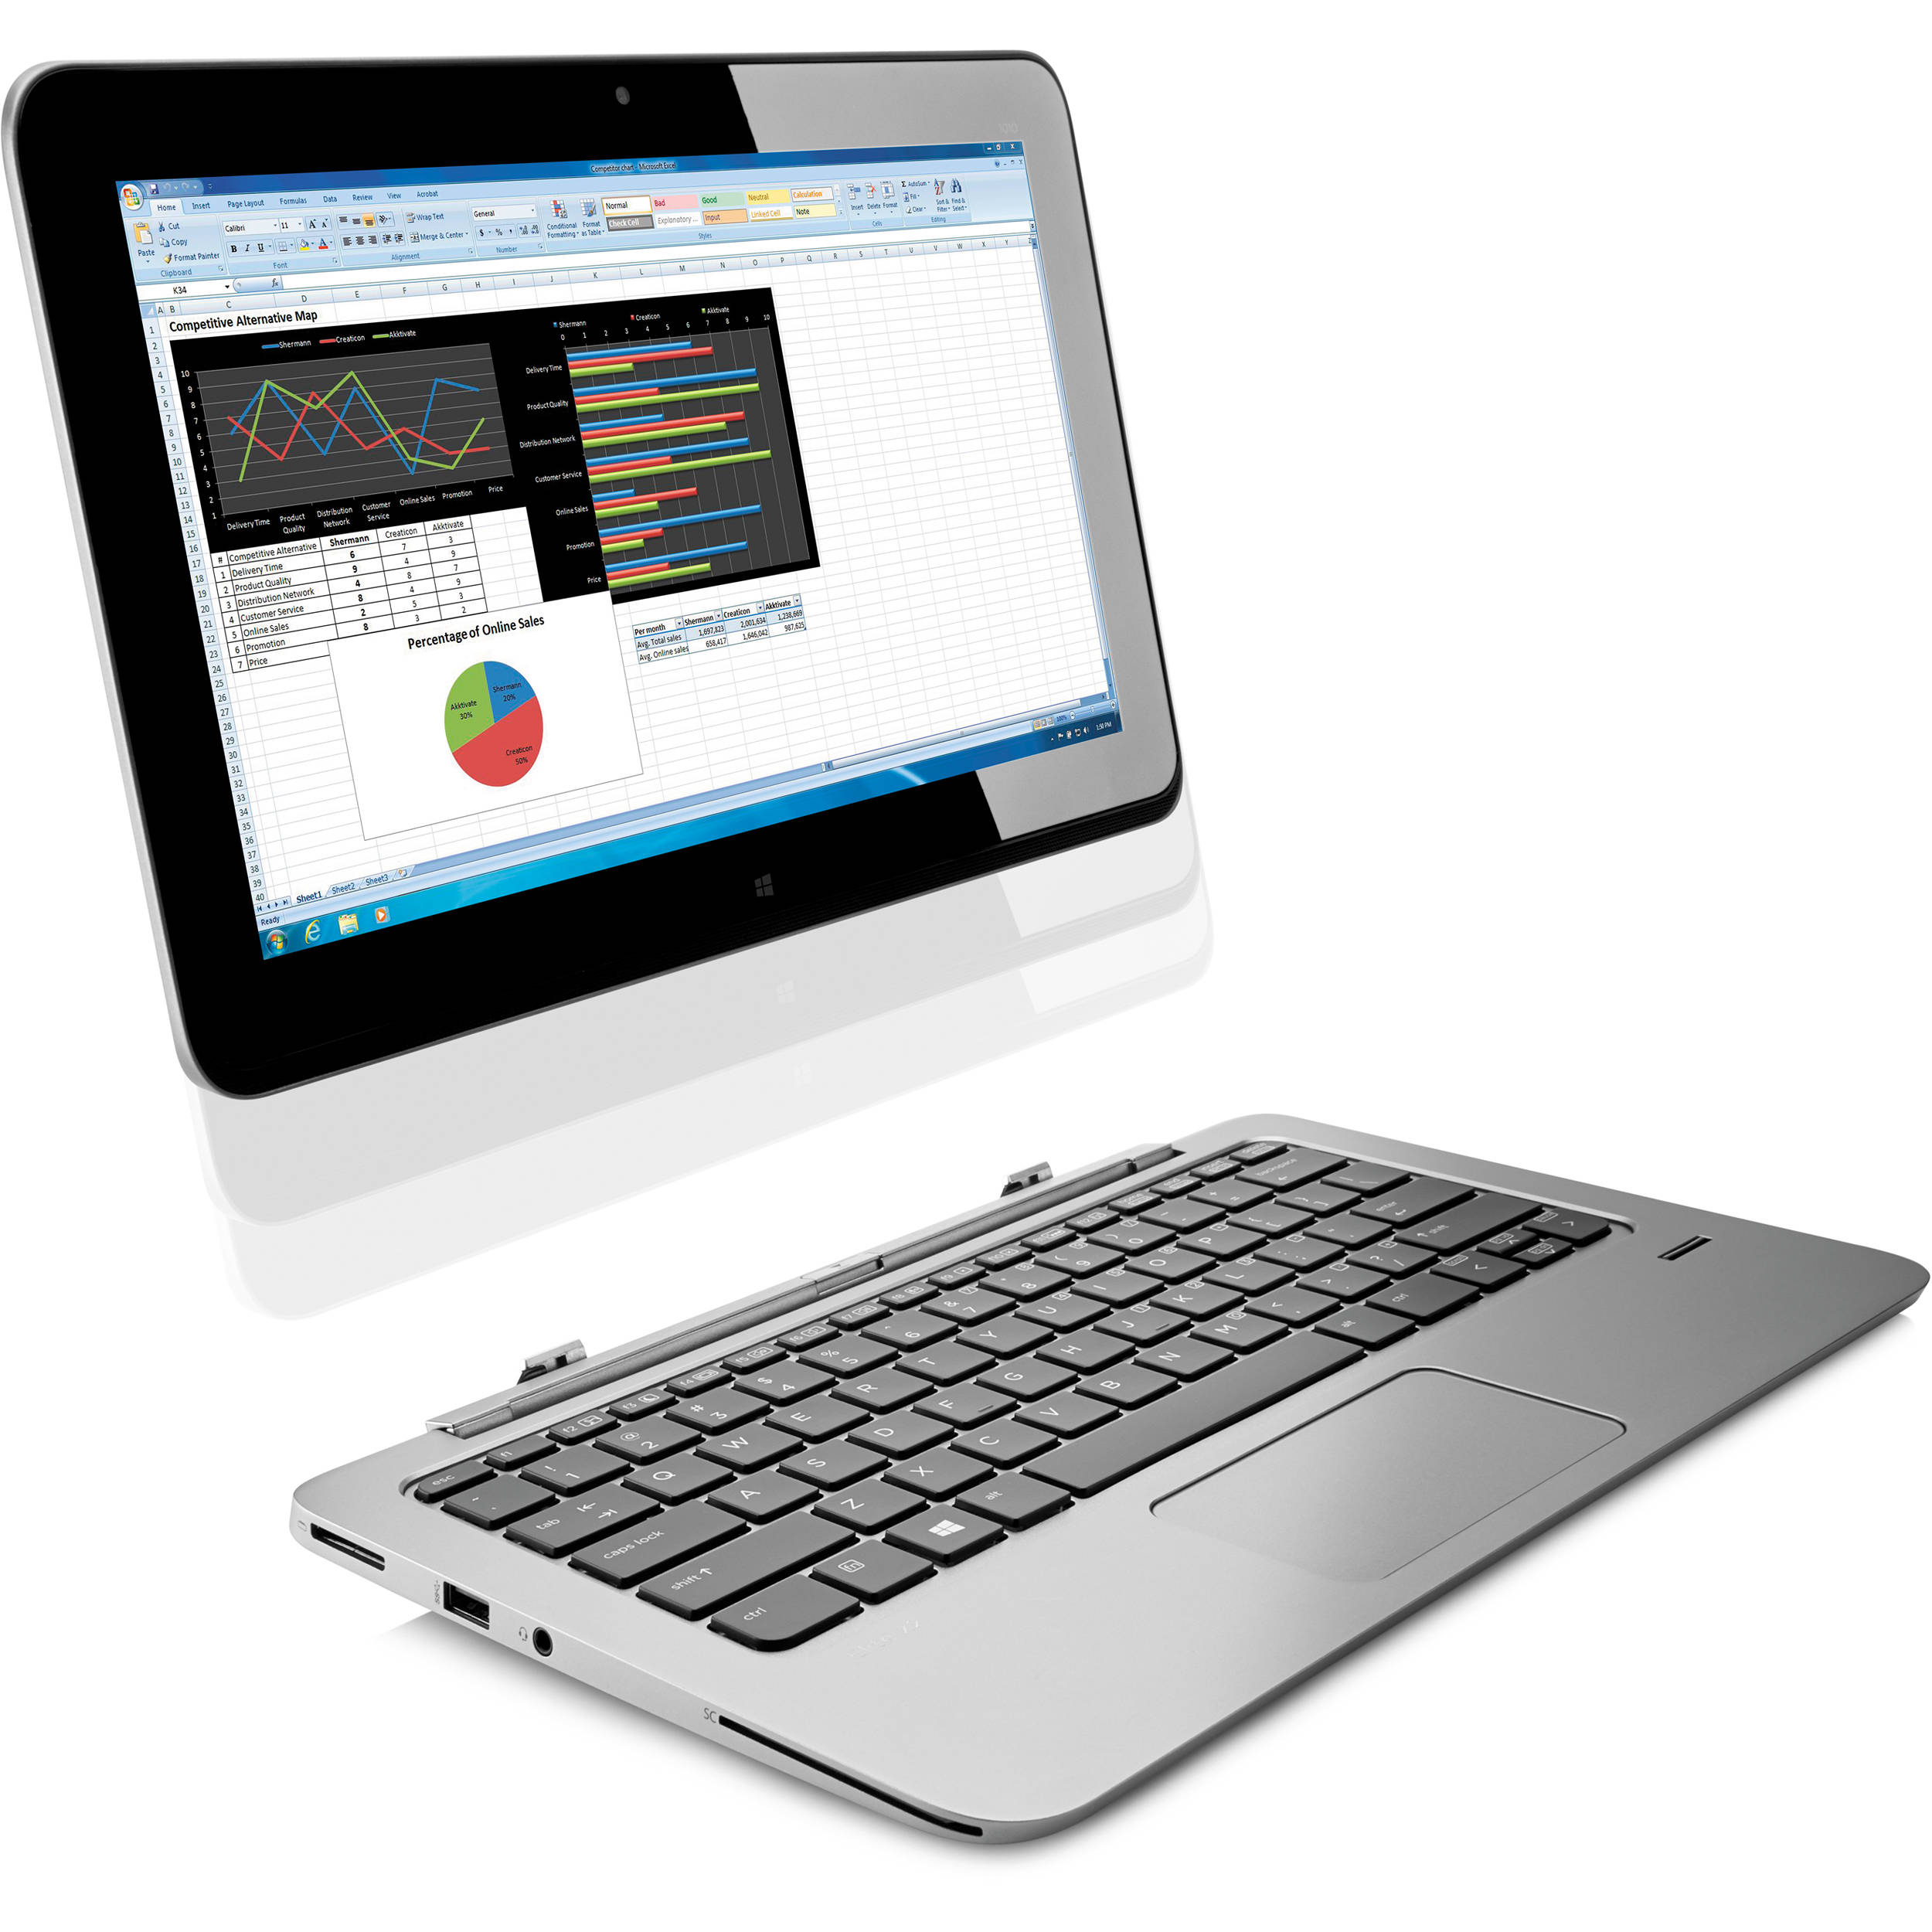 HP ENVY X2 11-G010ER SYNAPTICS TOUCHPAD WINDOWS 8 DRIVERS DOWNLOAD (2019)